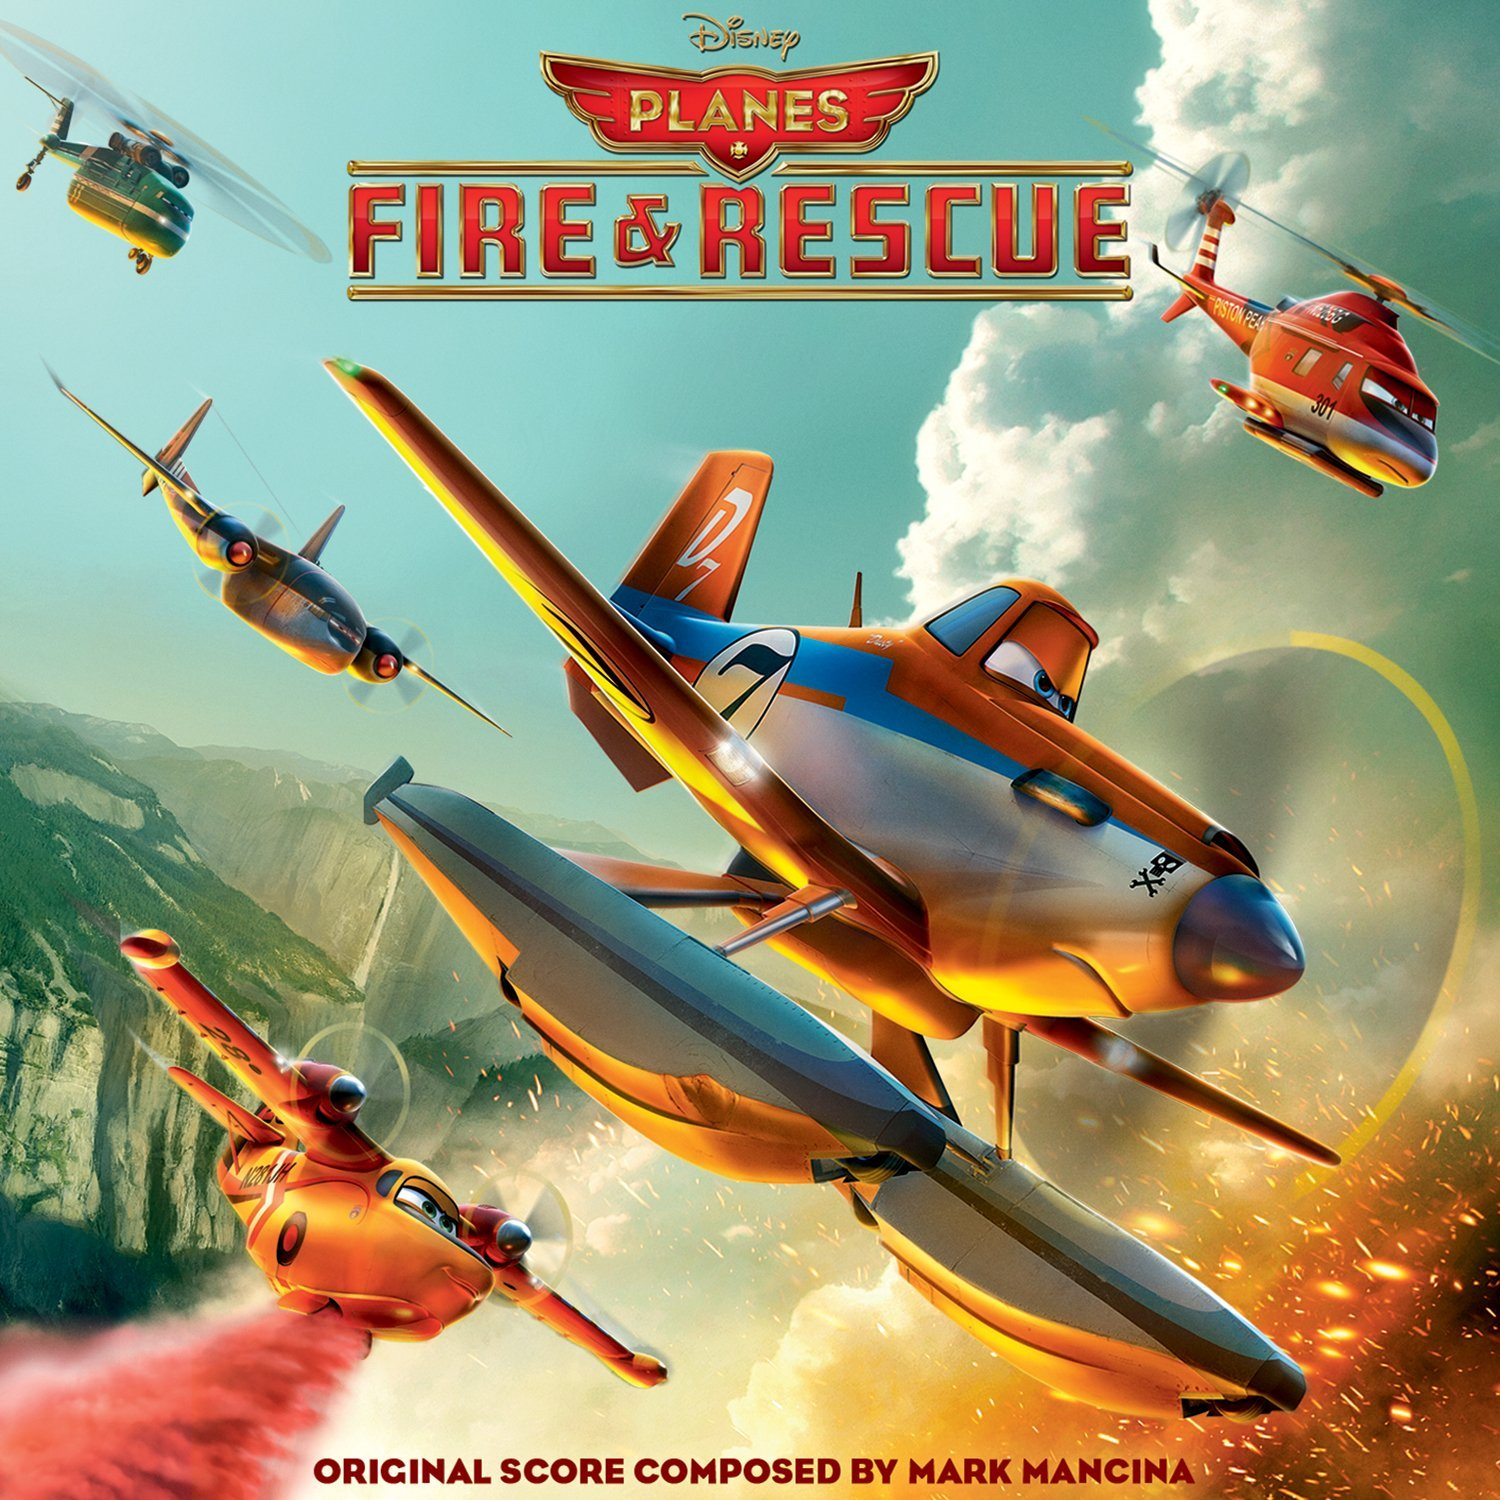 planes 2 Disney bande originale soundtrack album fire rescue